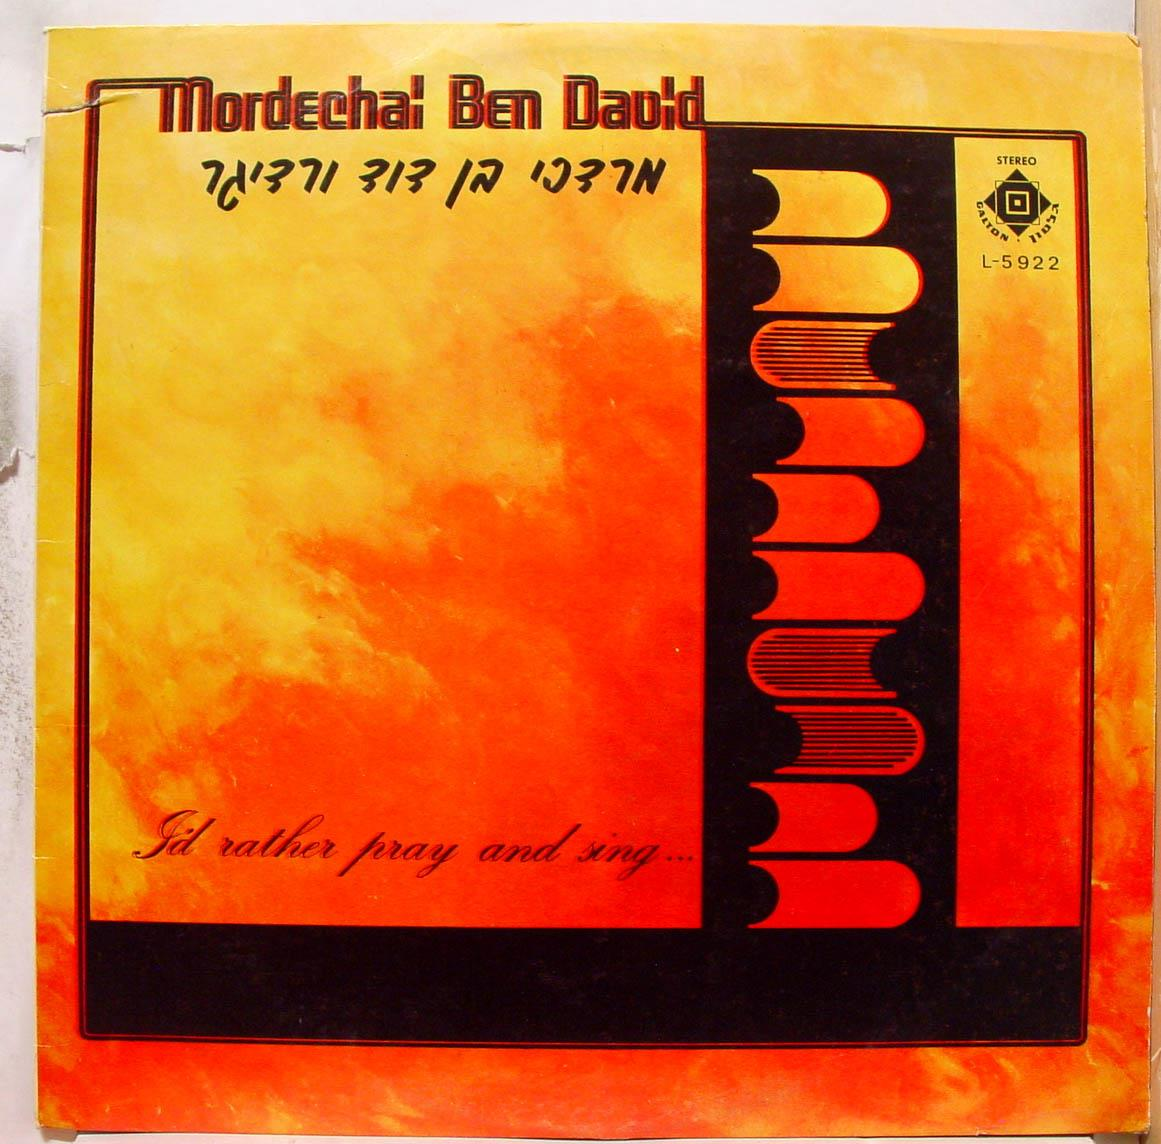 Mordechai Ben David I'd Rather Pray And Sing Lp Vg